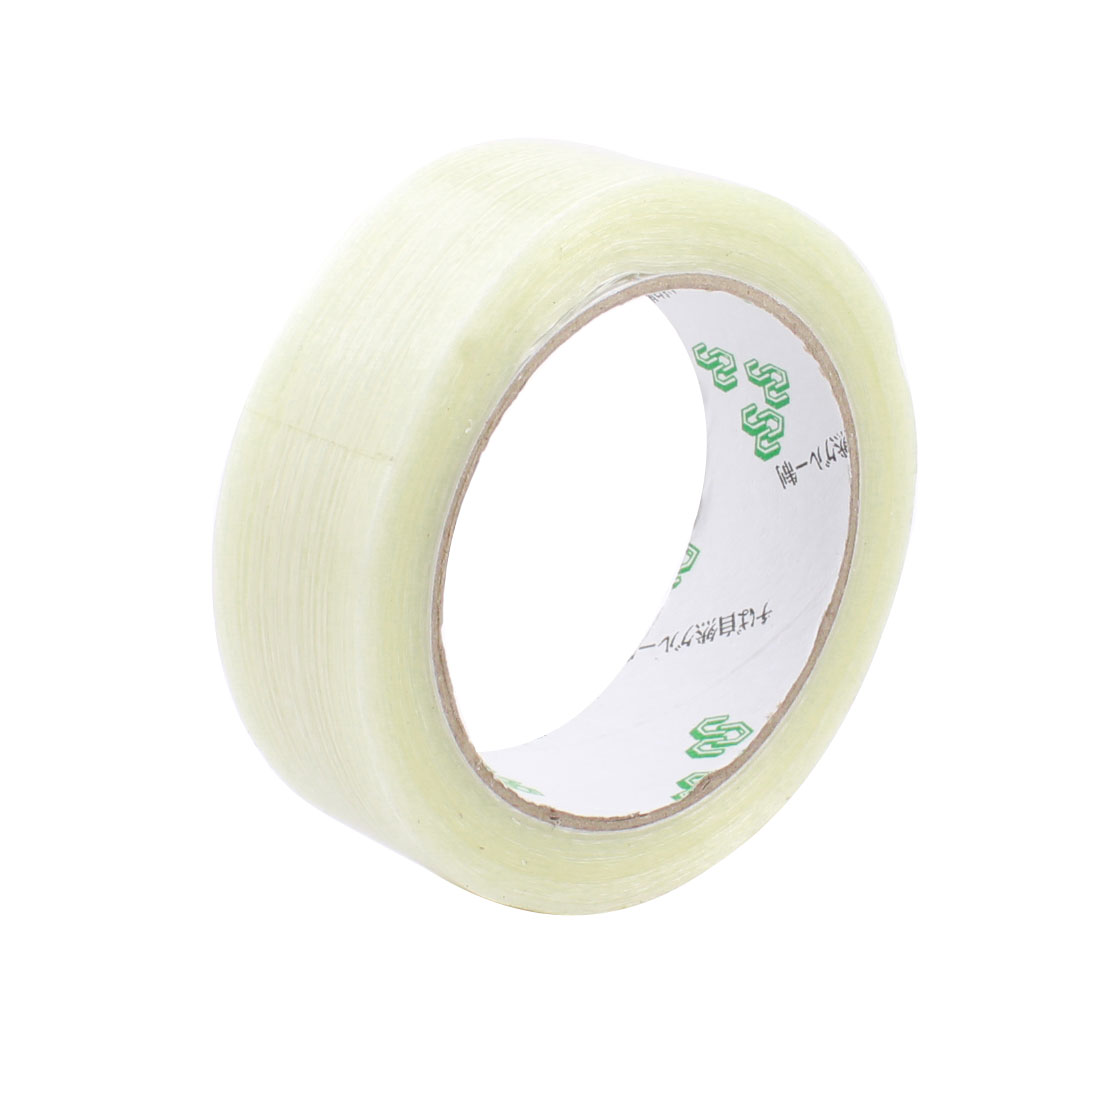 RC Model Parts 30mm Width 25meter Long Adhesive Glass Fibre Tape Roll